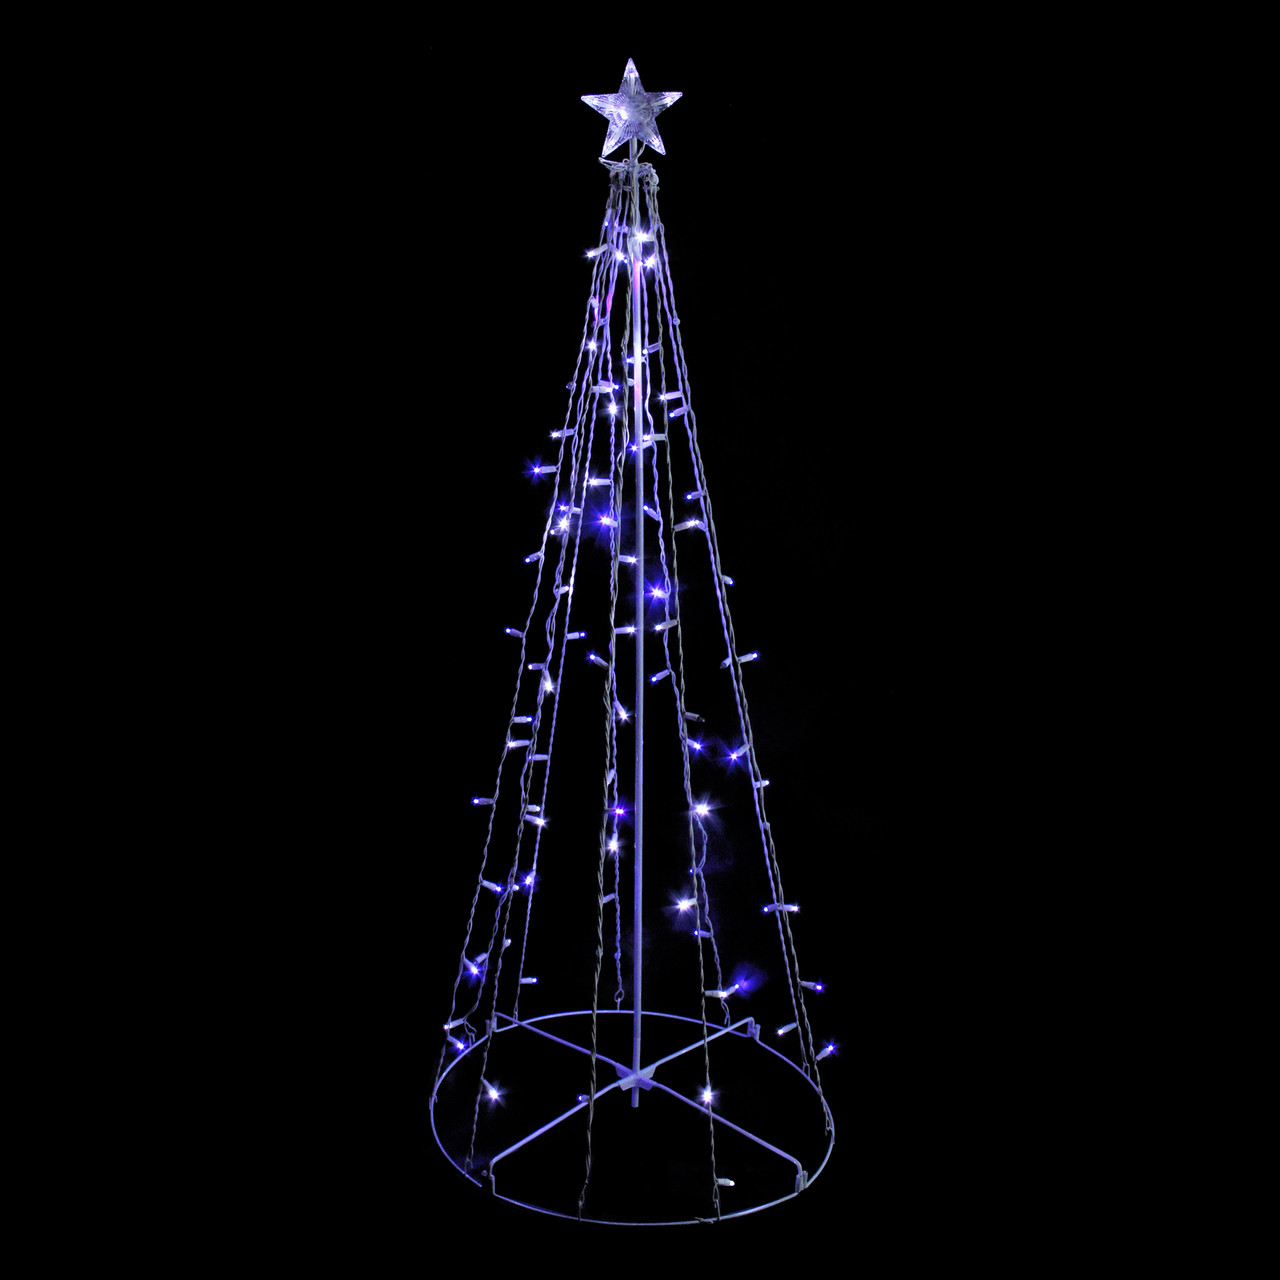 5 blue white led lighted outdoor twinkling christmas tree decoration 23148761 - Blue And White Outdoor Christmas Decorations